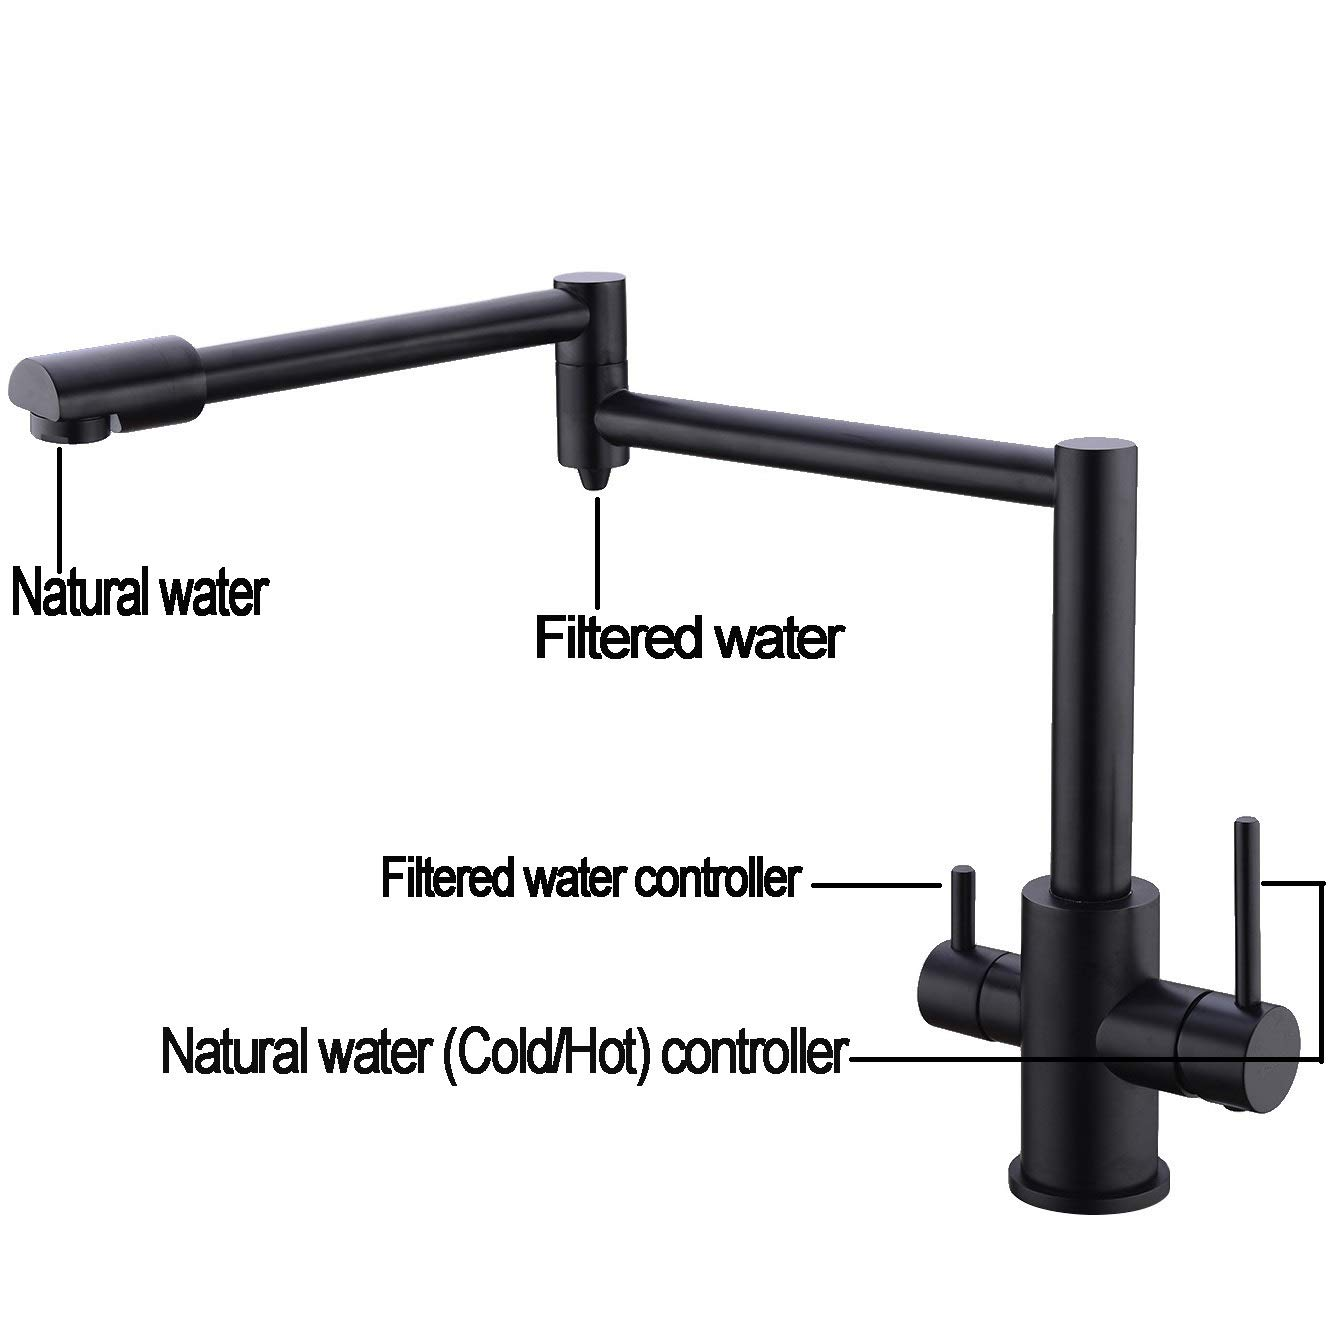 Pot Filler Folding Kitchen Faucet with Drinking Water Faucet for Under Sink Water Filter System,Delle Rosa Single Hole Two Handle Brass Kitchen Sink Faucet Matte Black Deck Mount Kitchen Faucet